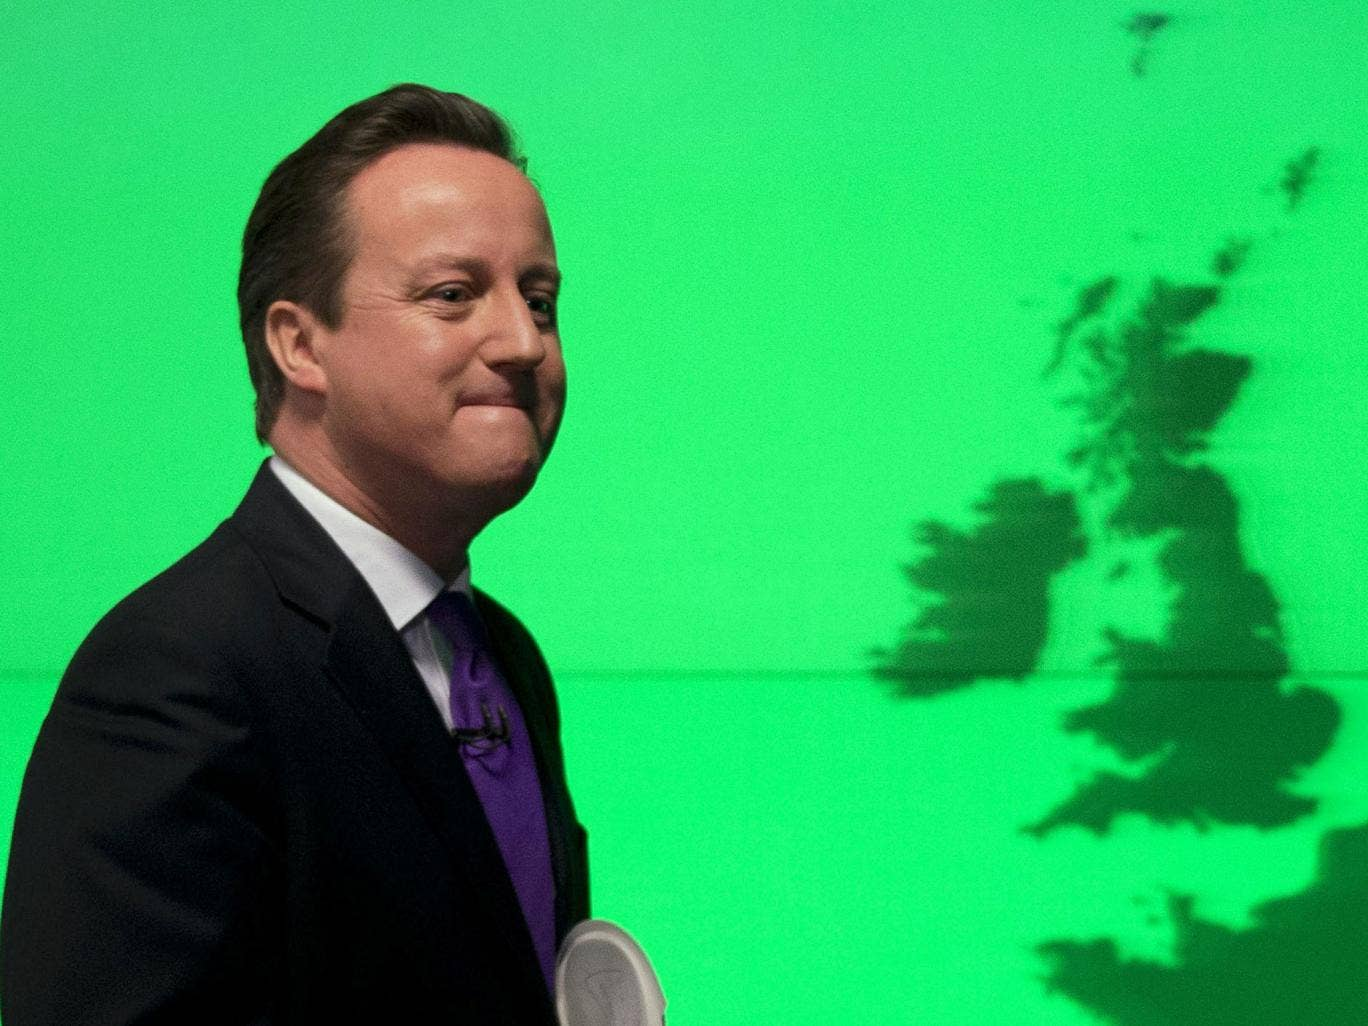 Prime Minister David Cameron walks off stage after his speech on Europe